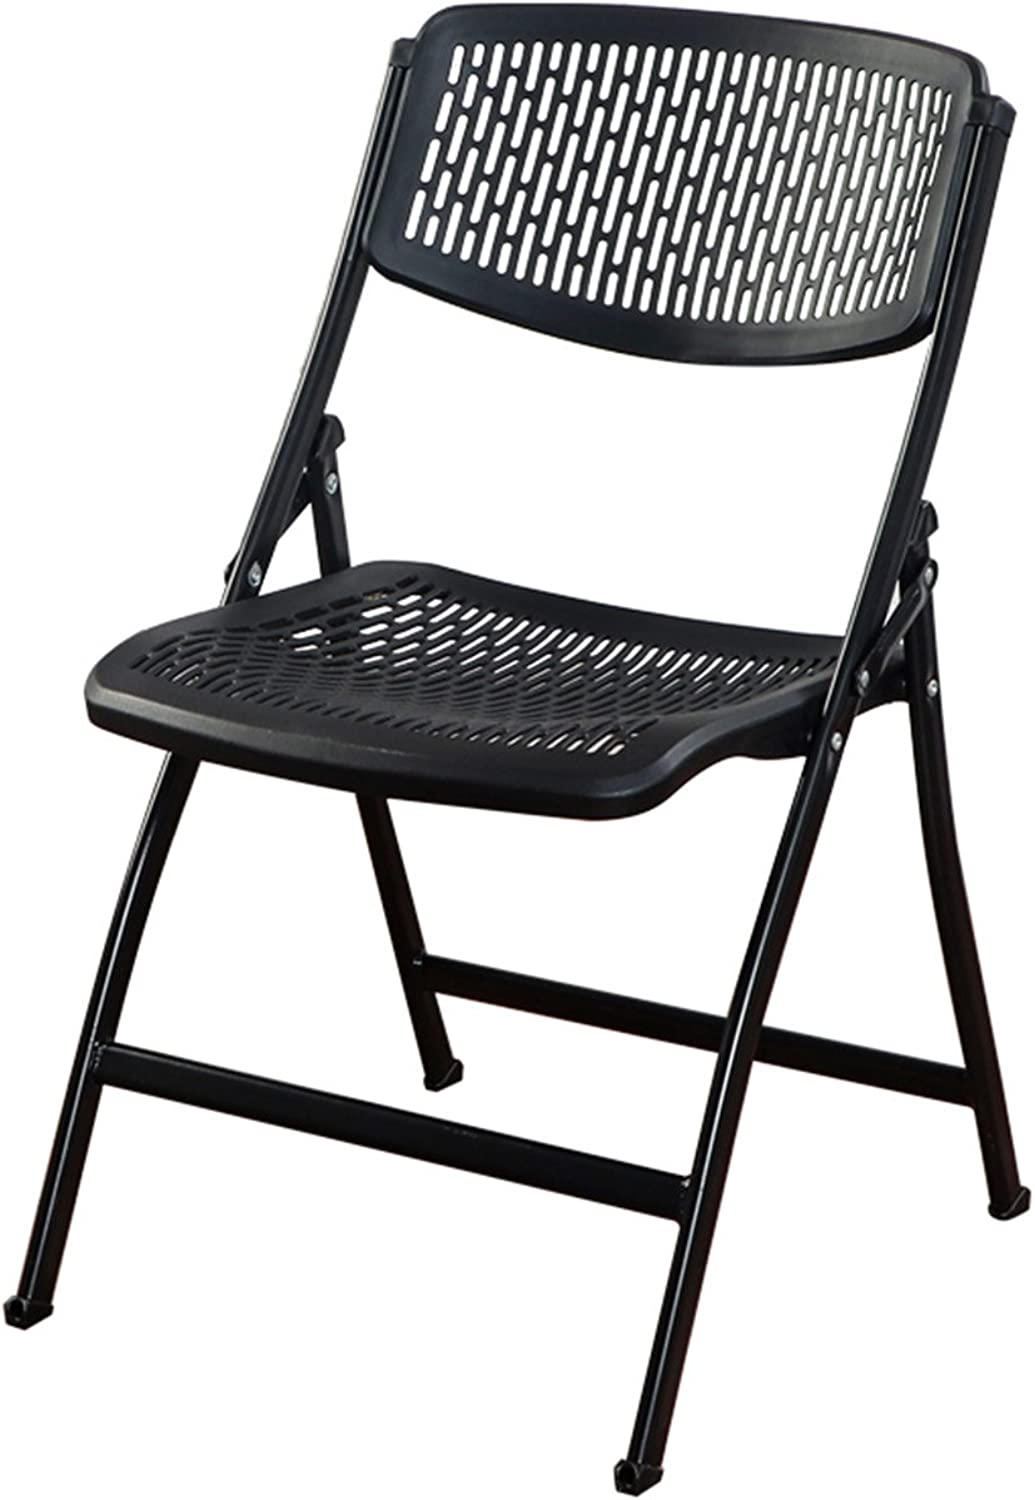 MAZHONG Barstools Folding Chair Back Breathable Hollow Chairs Business Conference Chairs Family Adult Stool Activities Office Chairs (color   A)